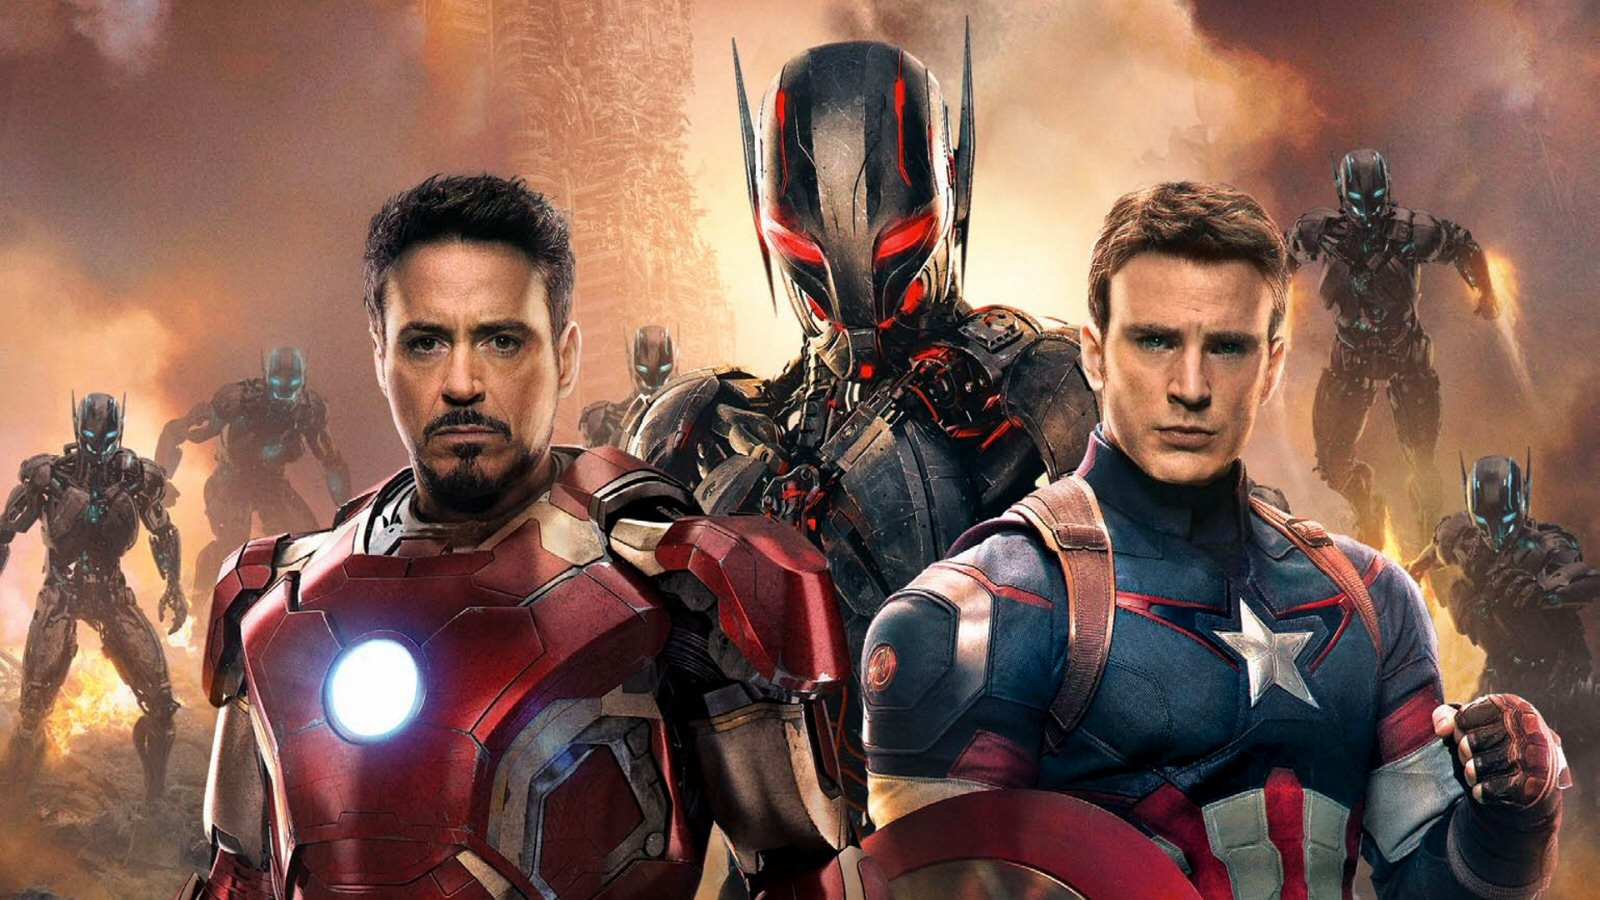 I`m not ready pick to a side yet, but I think I can rule out ULTRON.